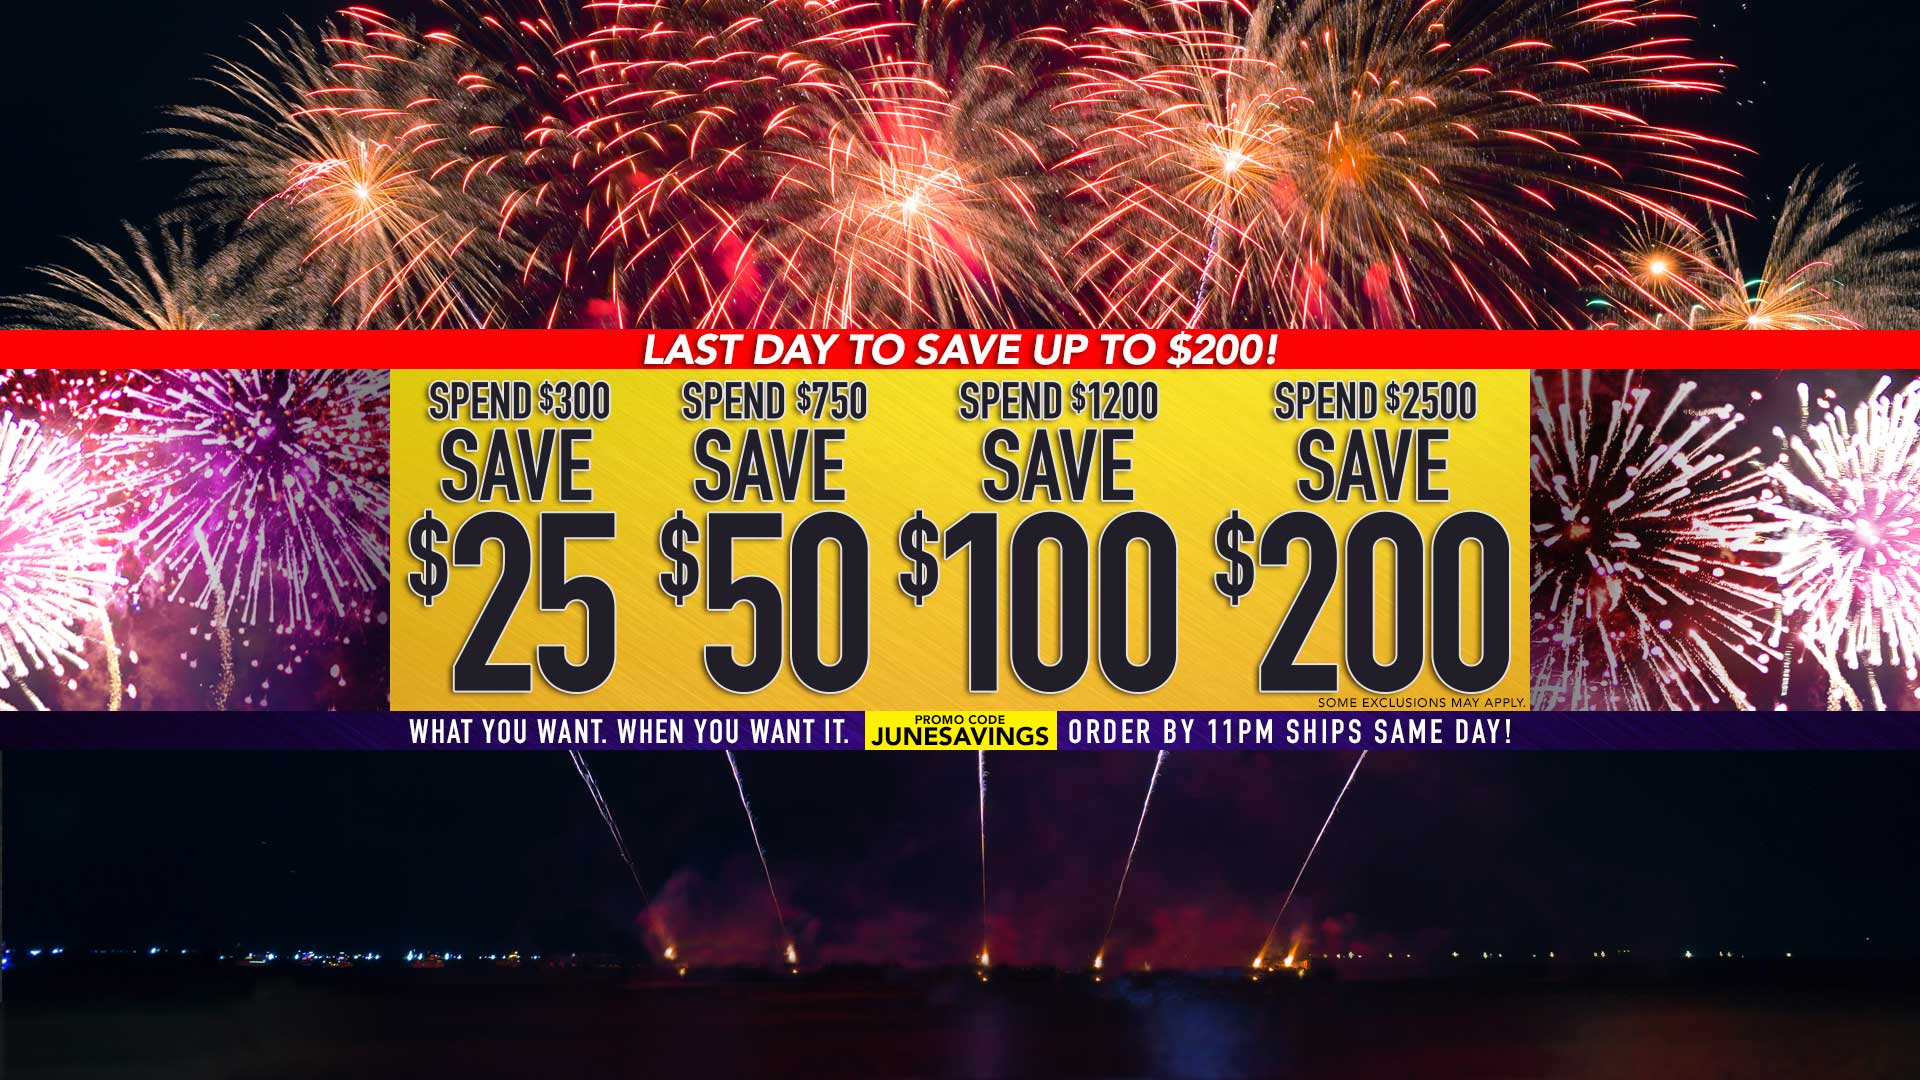 $25 off $300, $50 off $750, $100 off $1,200, $200 off $2,500 – Use Promo Code JUNESAVINGS